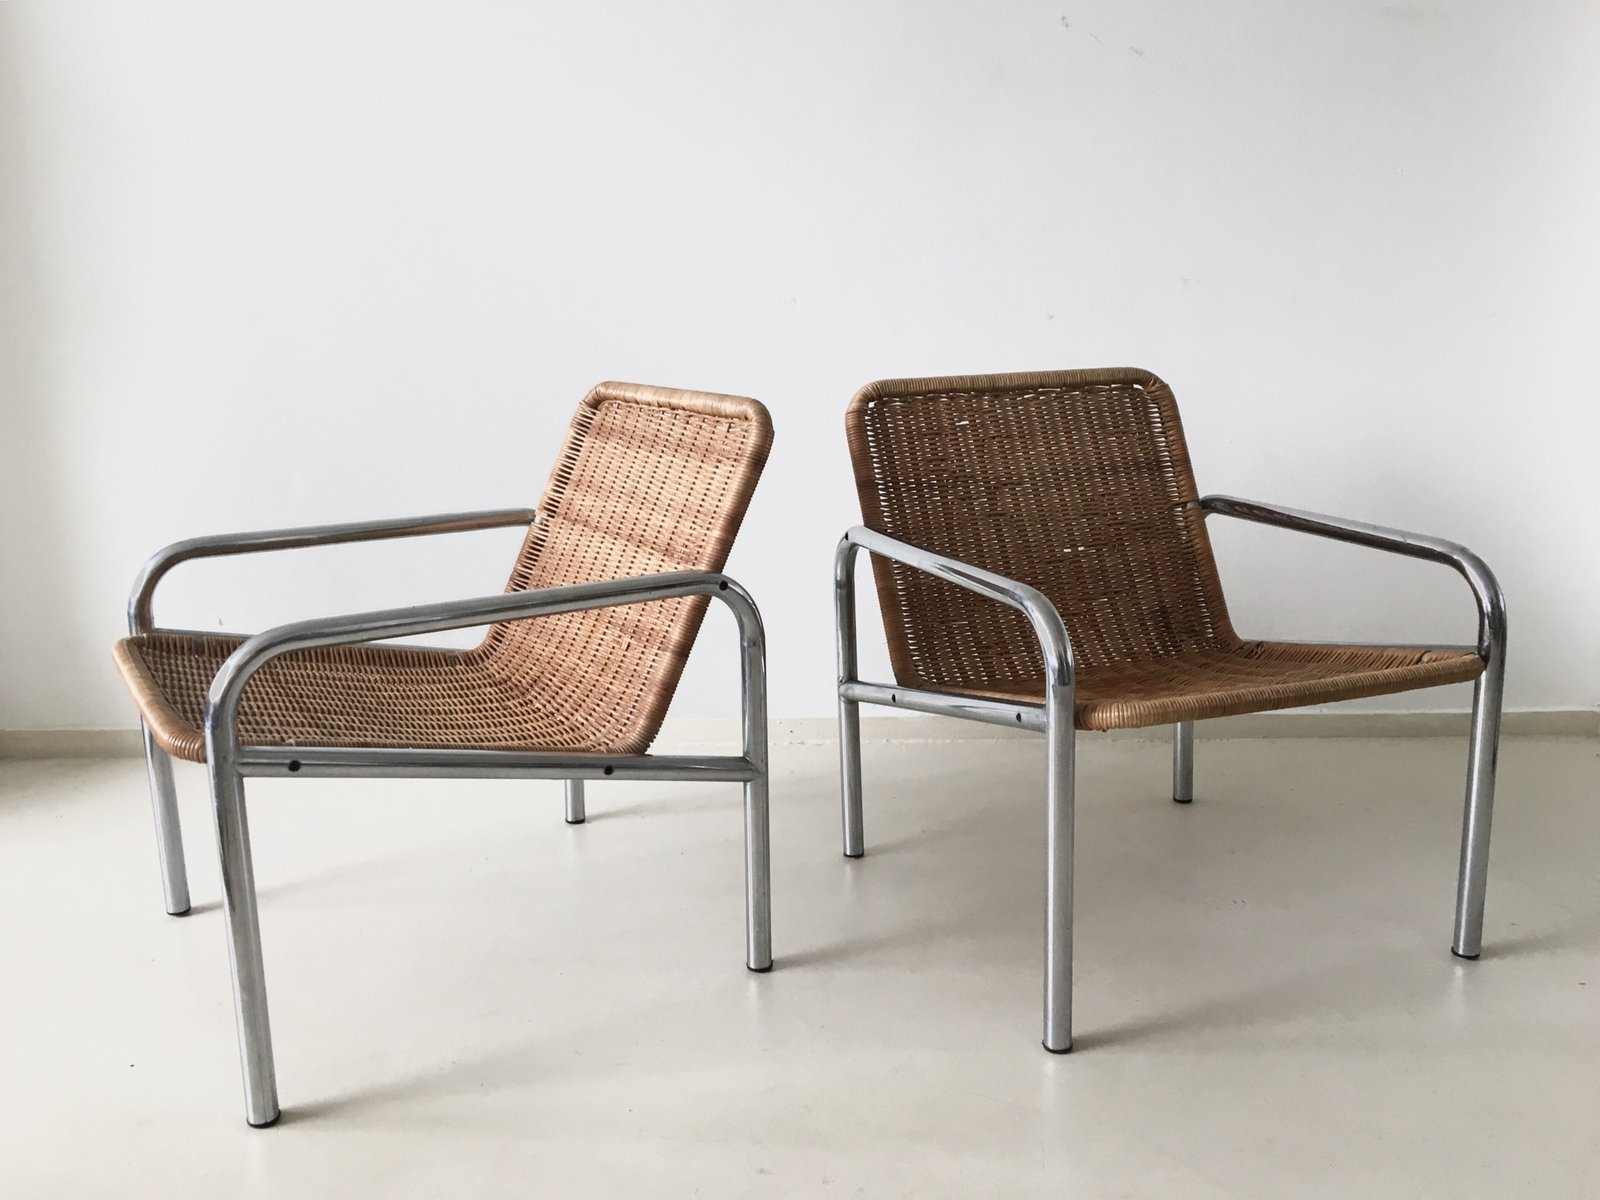 steel lounge chair blue dining room chairs vintage wicker and metal 1960s for sale at